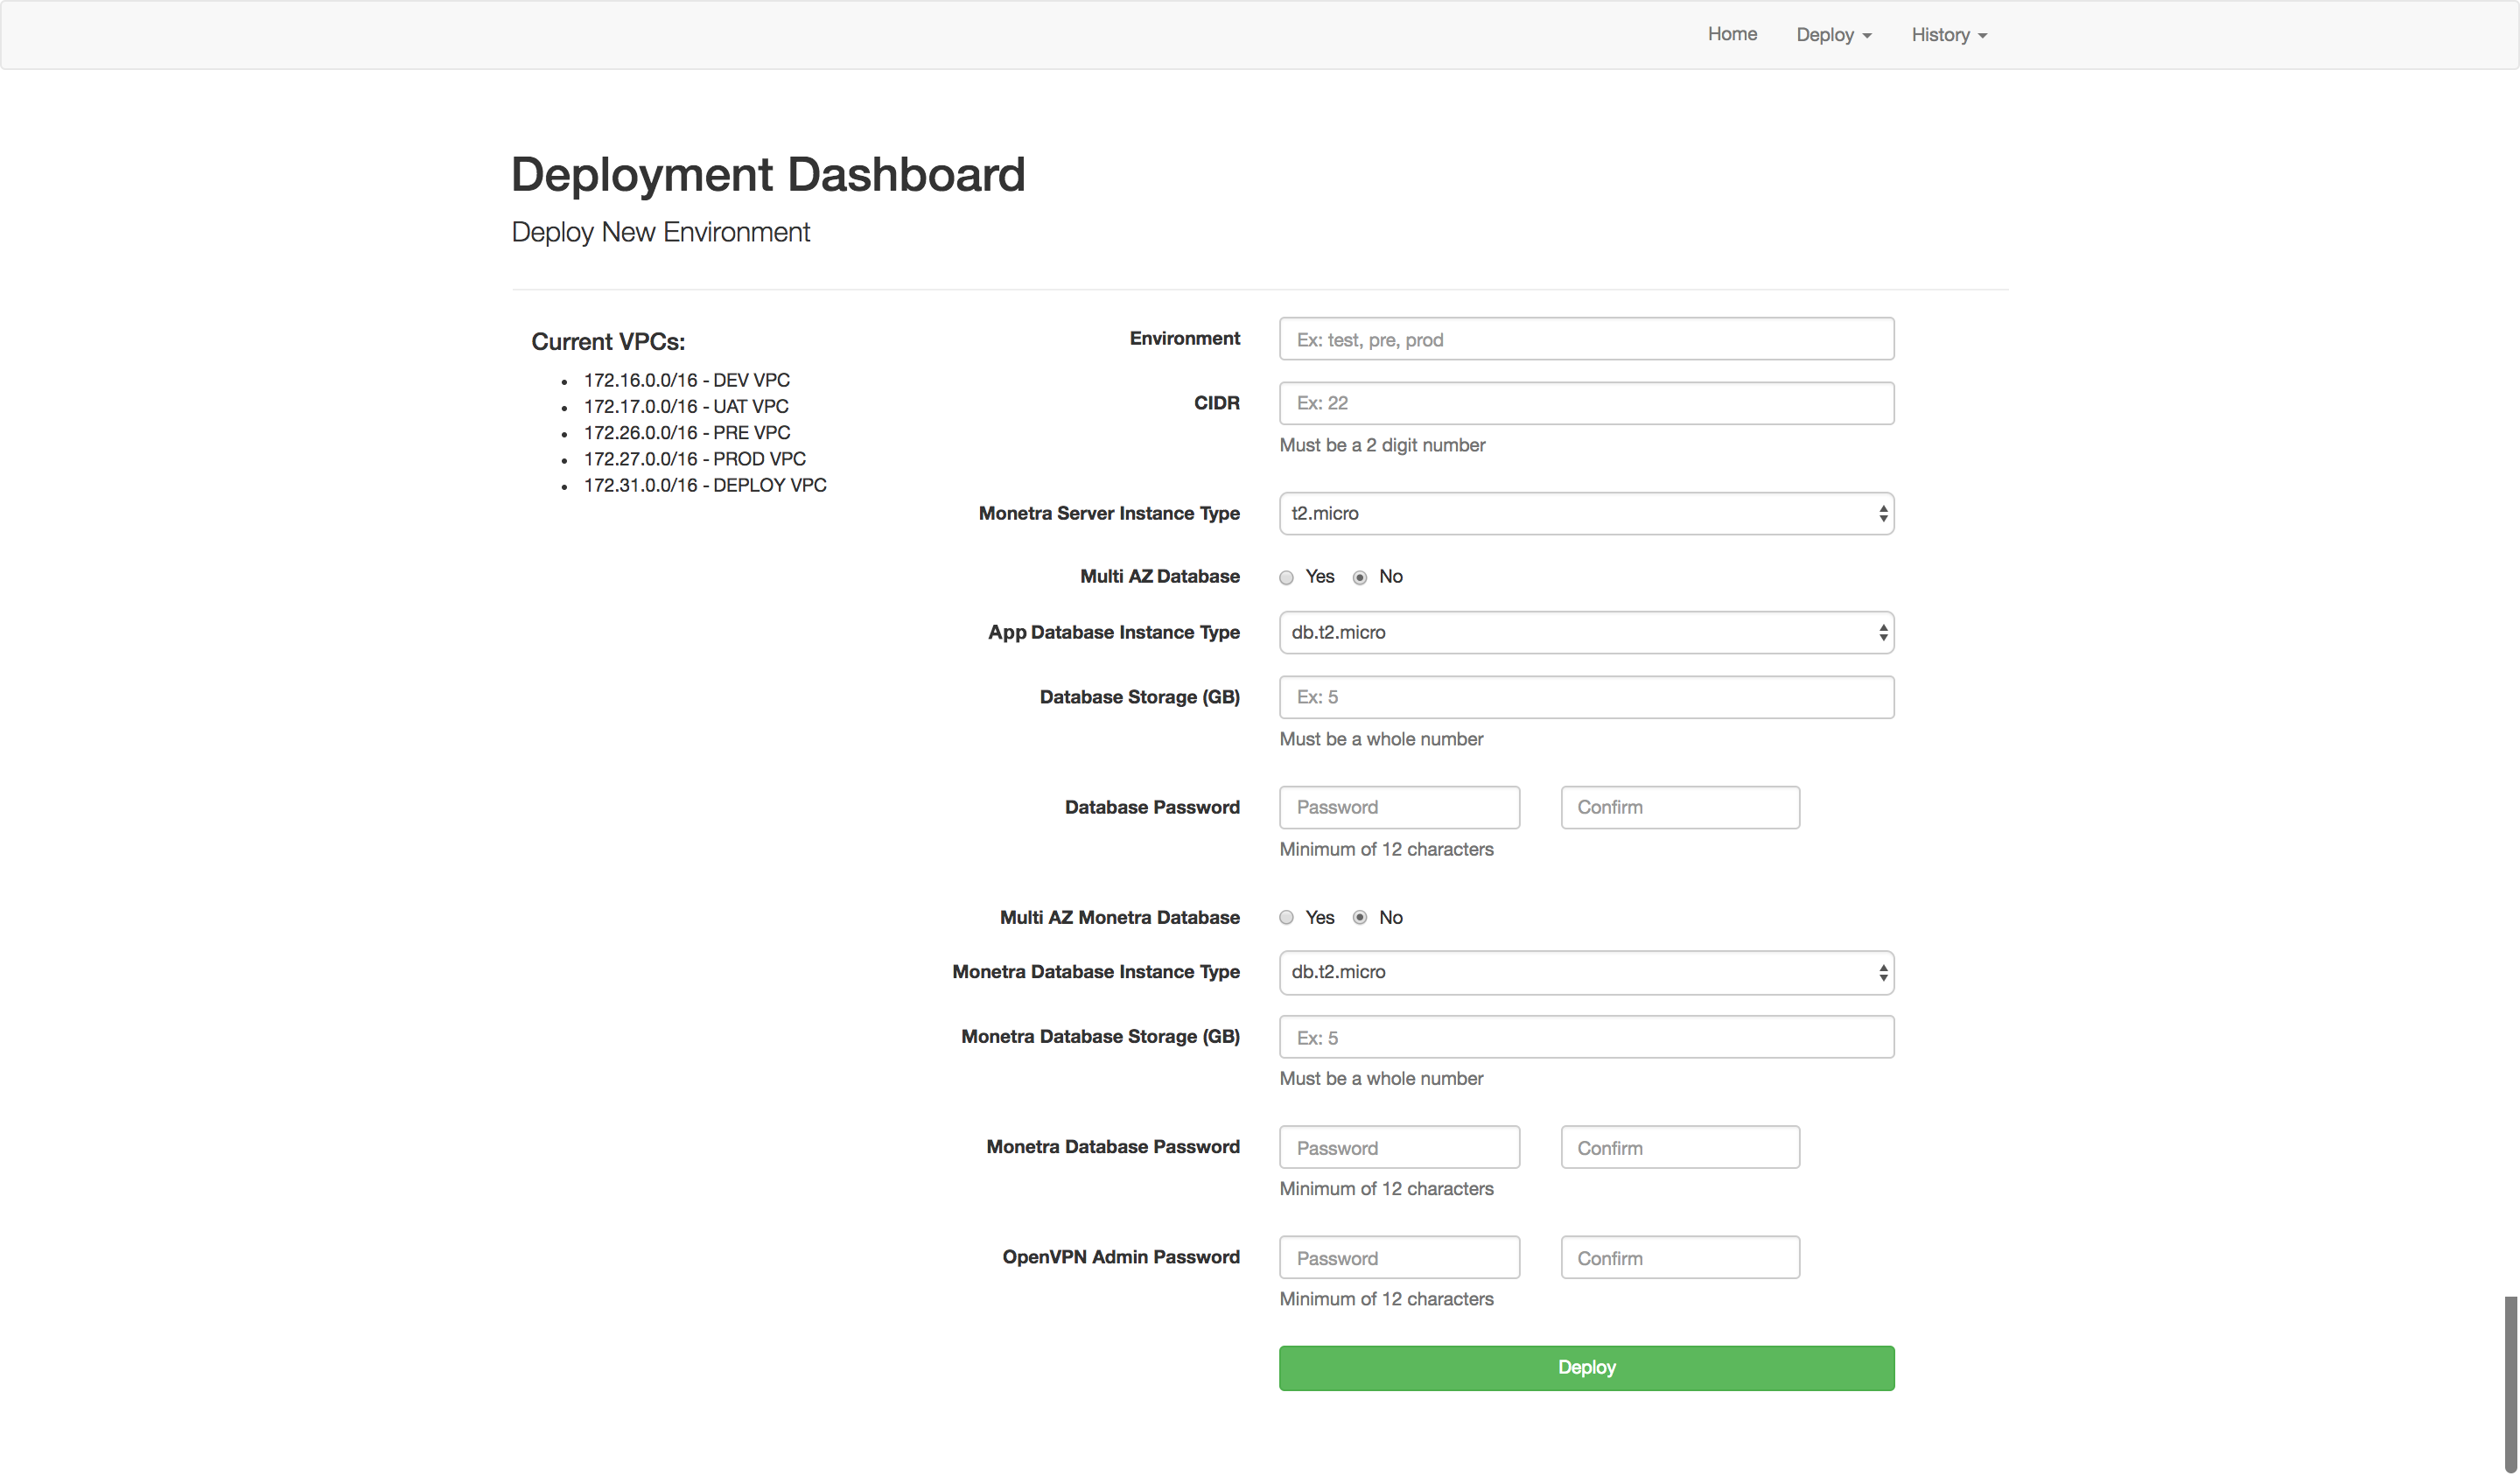 Deployment Dashboard